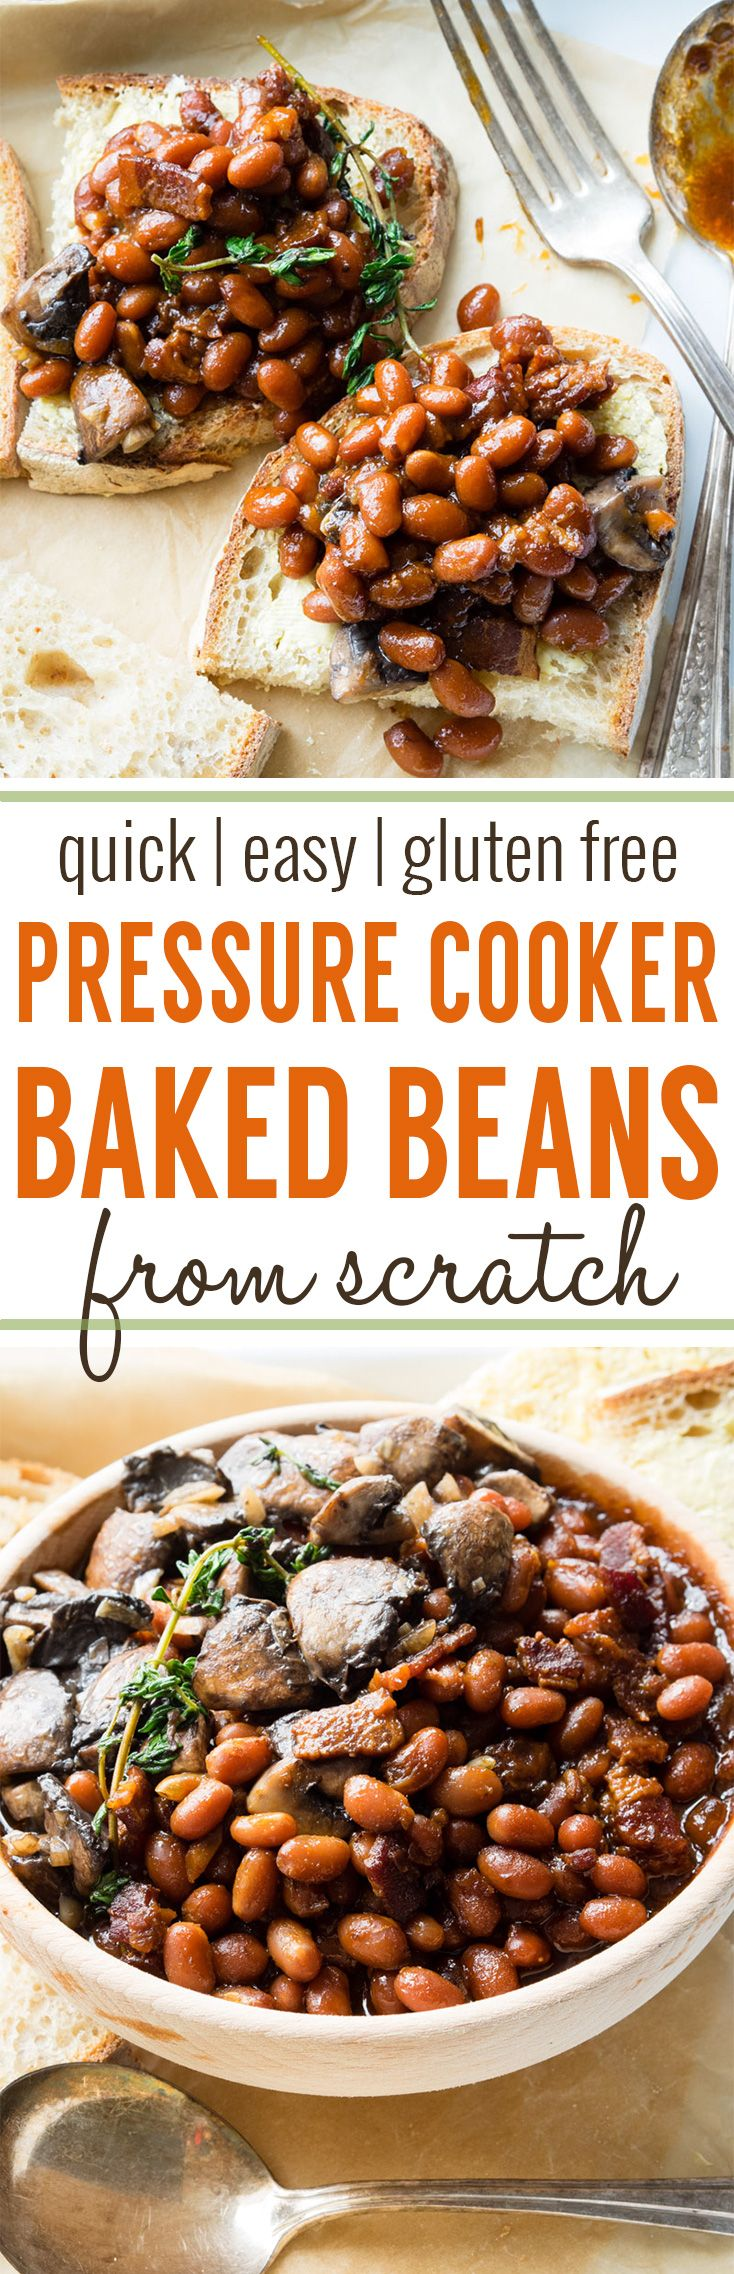 Pressure Cooker Baked Beans (GF) - easy, quick and made from scratch! Make a pot of Pressure Cooker Baked Beans, have it for dinner, and the next morning, serve it on toast at breakfast. With this recipe, you can make baked beans in less than 1 hour. #pressurecooker #bakedbeans #beans #instantpot